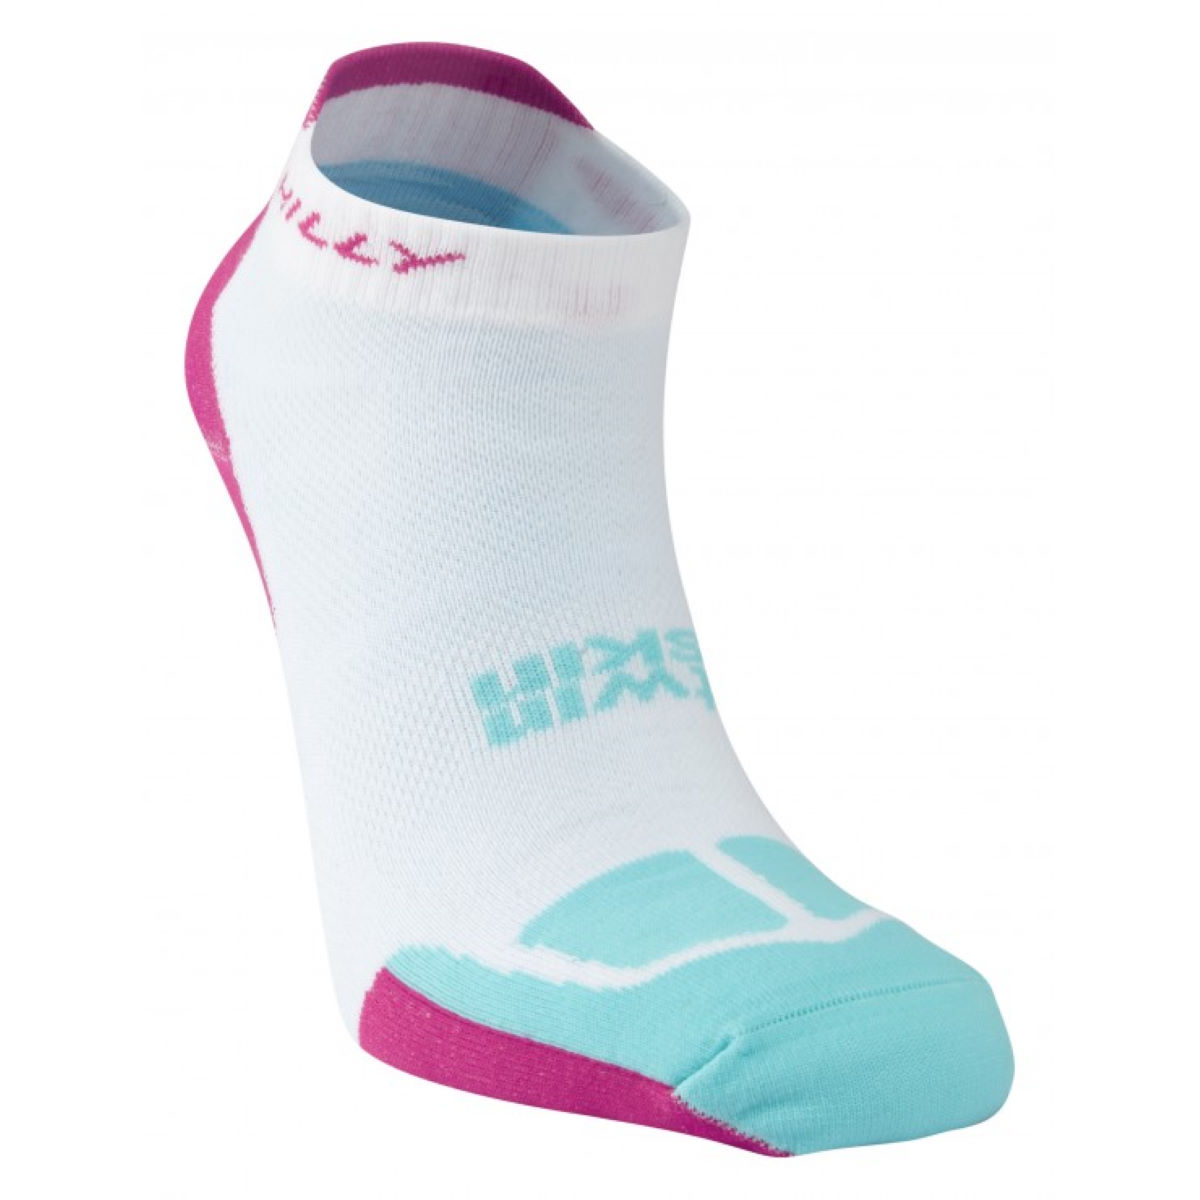 Image of Chaussettes Femme Hilly TwinSkin - M White/Pink/Aqua | Chaussettes